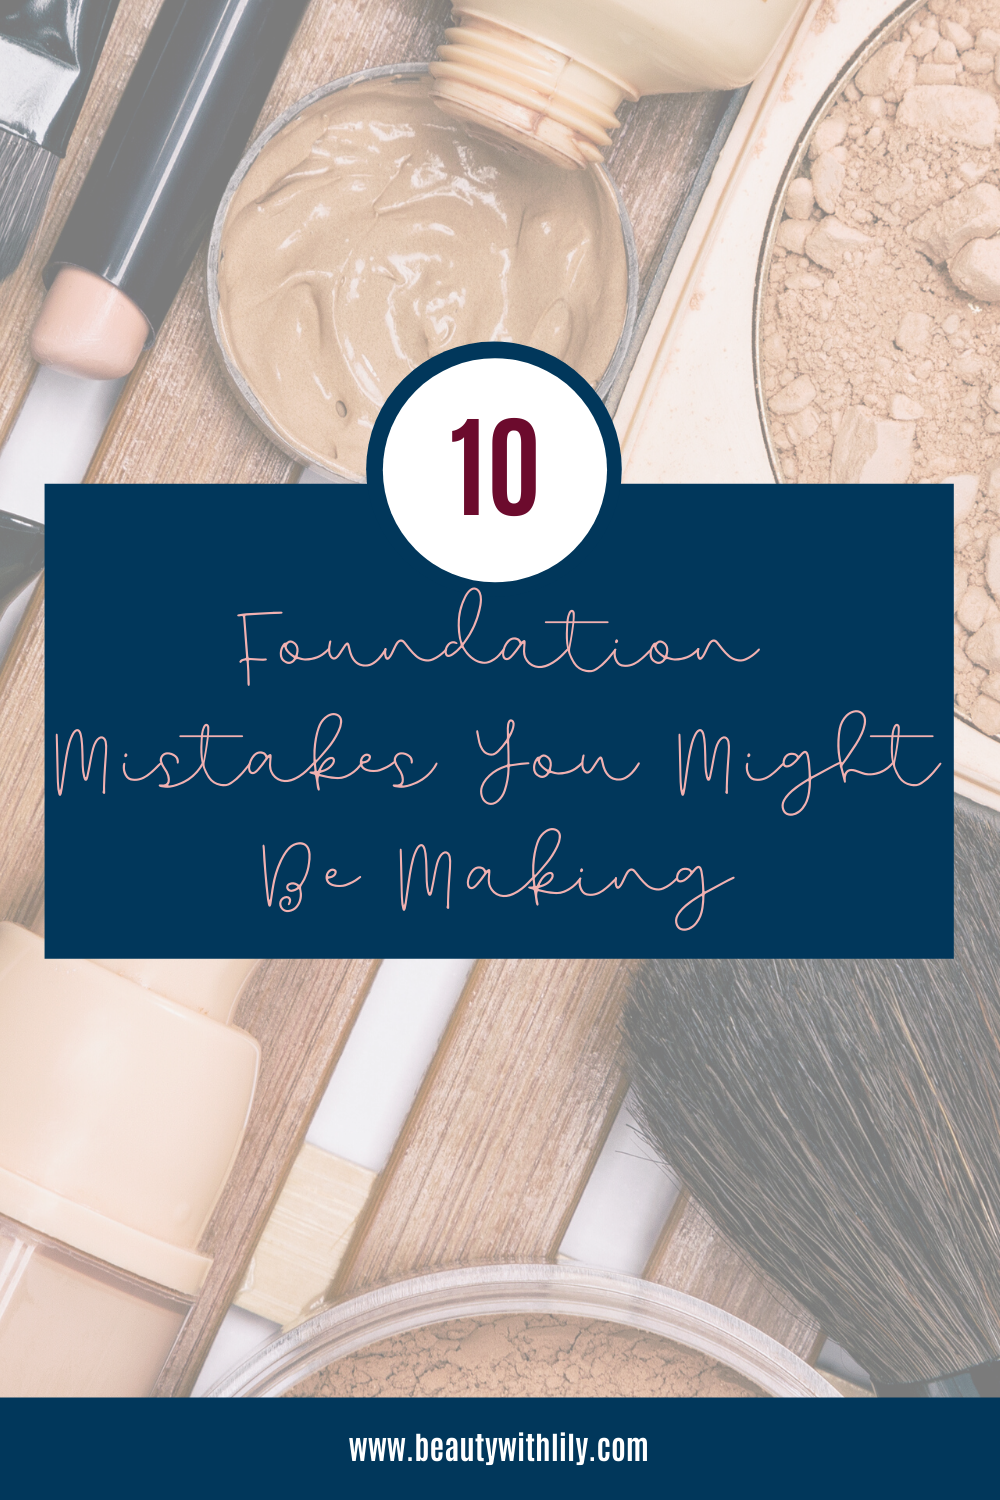 10 Foundation Mistakes You Might Be Making // How to Apply Foundation // Foundation Tips & Tricks // Foundation Hacks // Makeup Tips & Tricks // Makeup Hacks | Beauty With Lily #foundationhacks #makeup101 #makeuptips